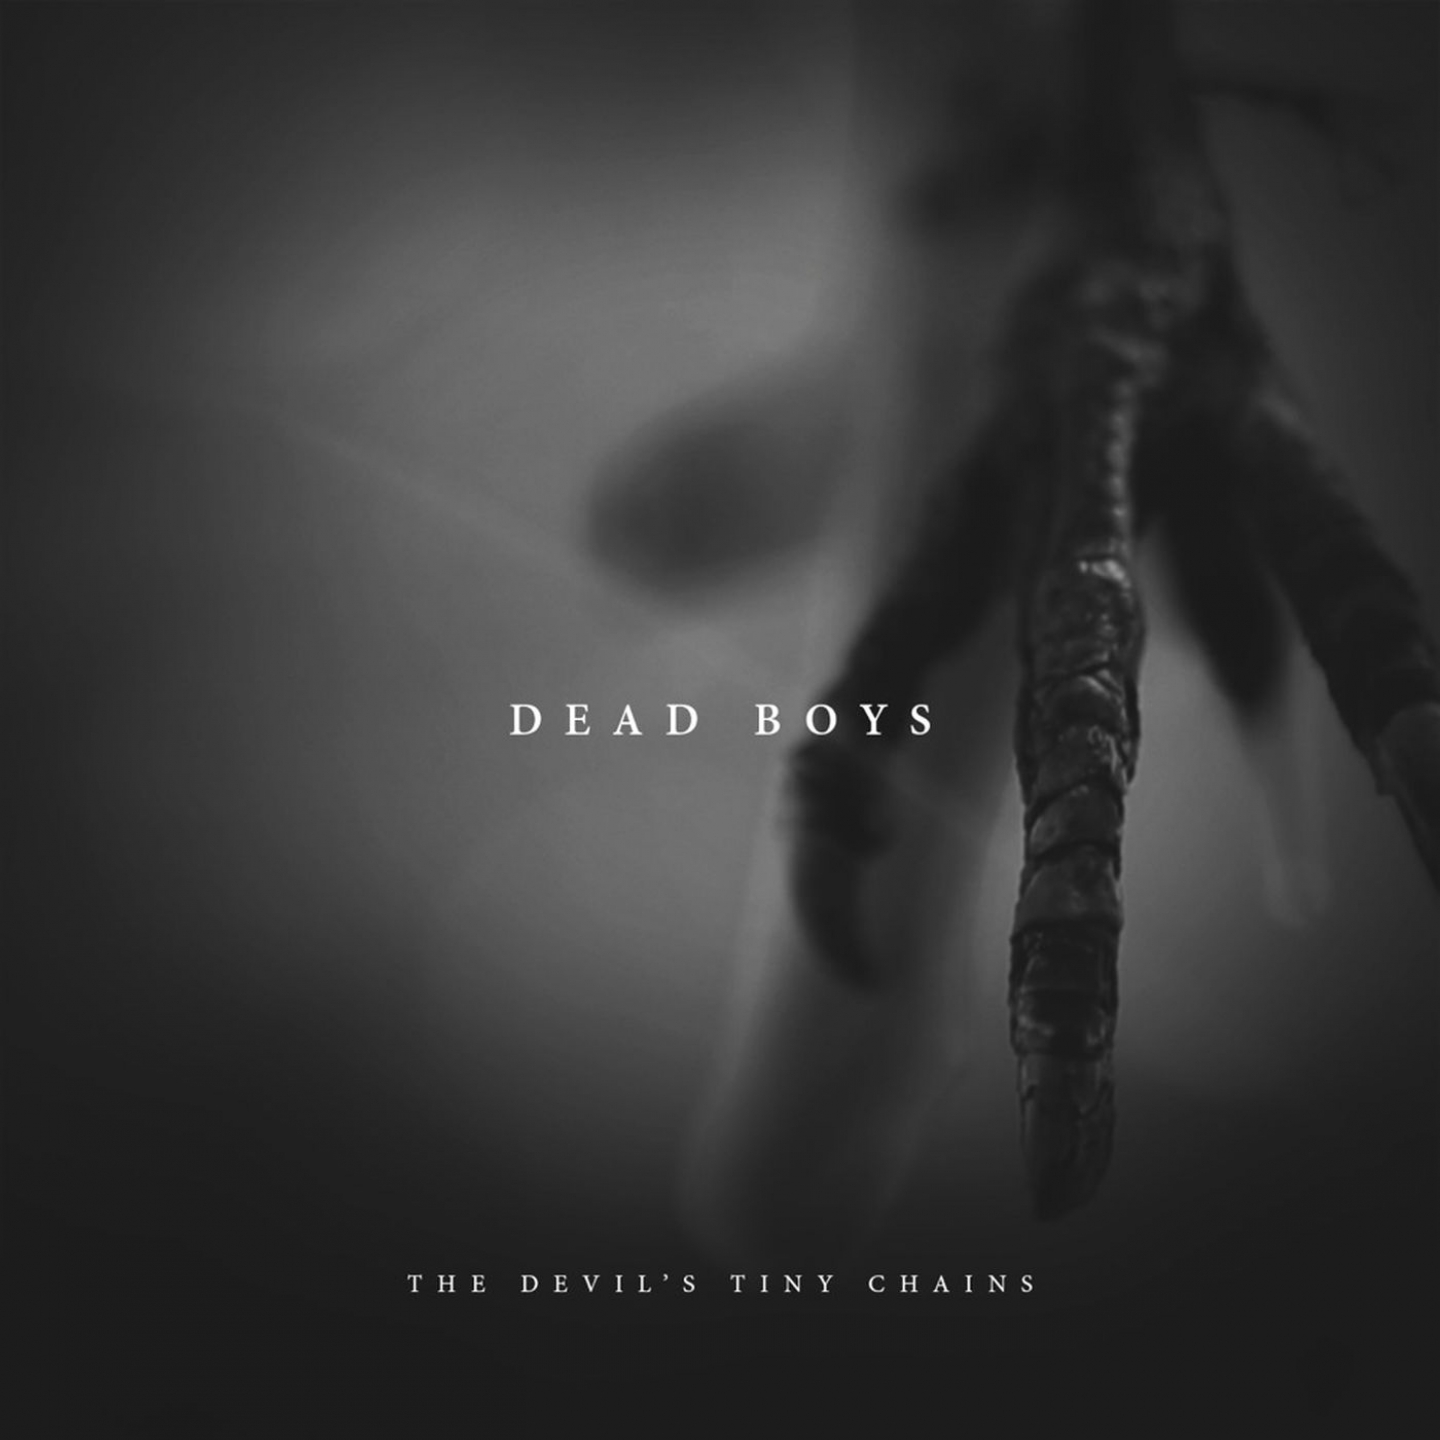 The Devil's Tiny Chains – 'Dead Boys' (Single)